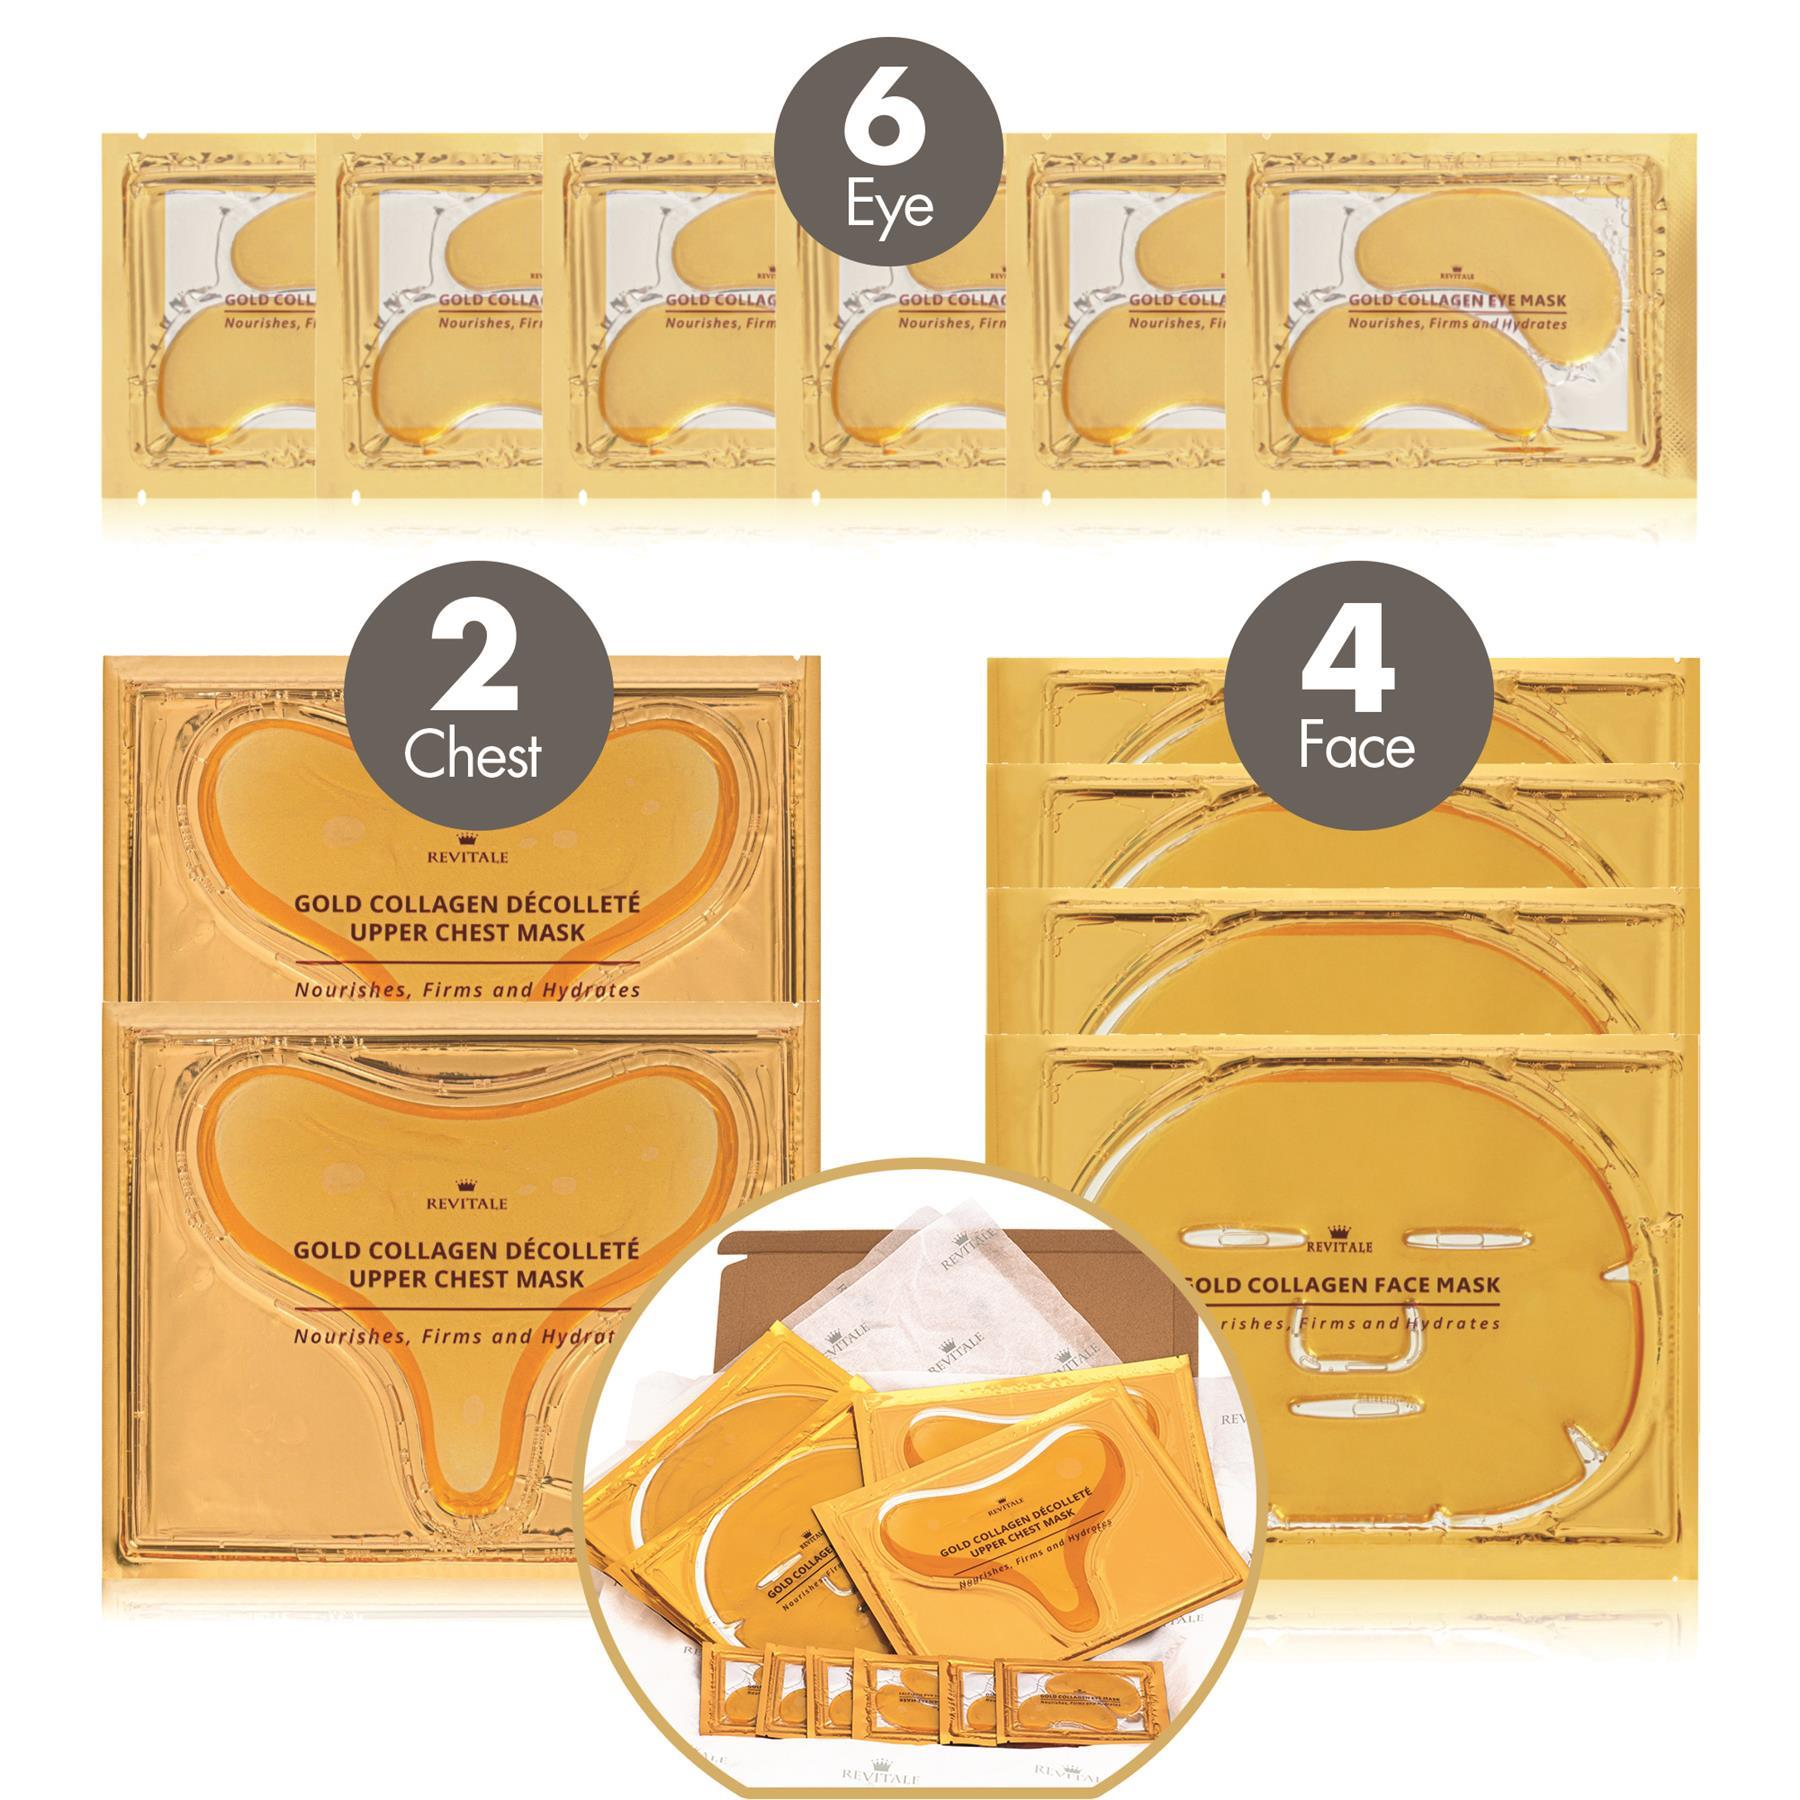 Revitale Gold Collagen Beauty Gift Pack - 6 Eye Gels - 4 Face Masks - 2 Upper Chest Masks